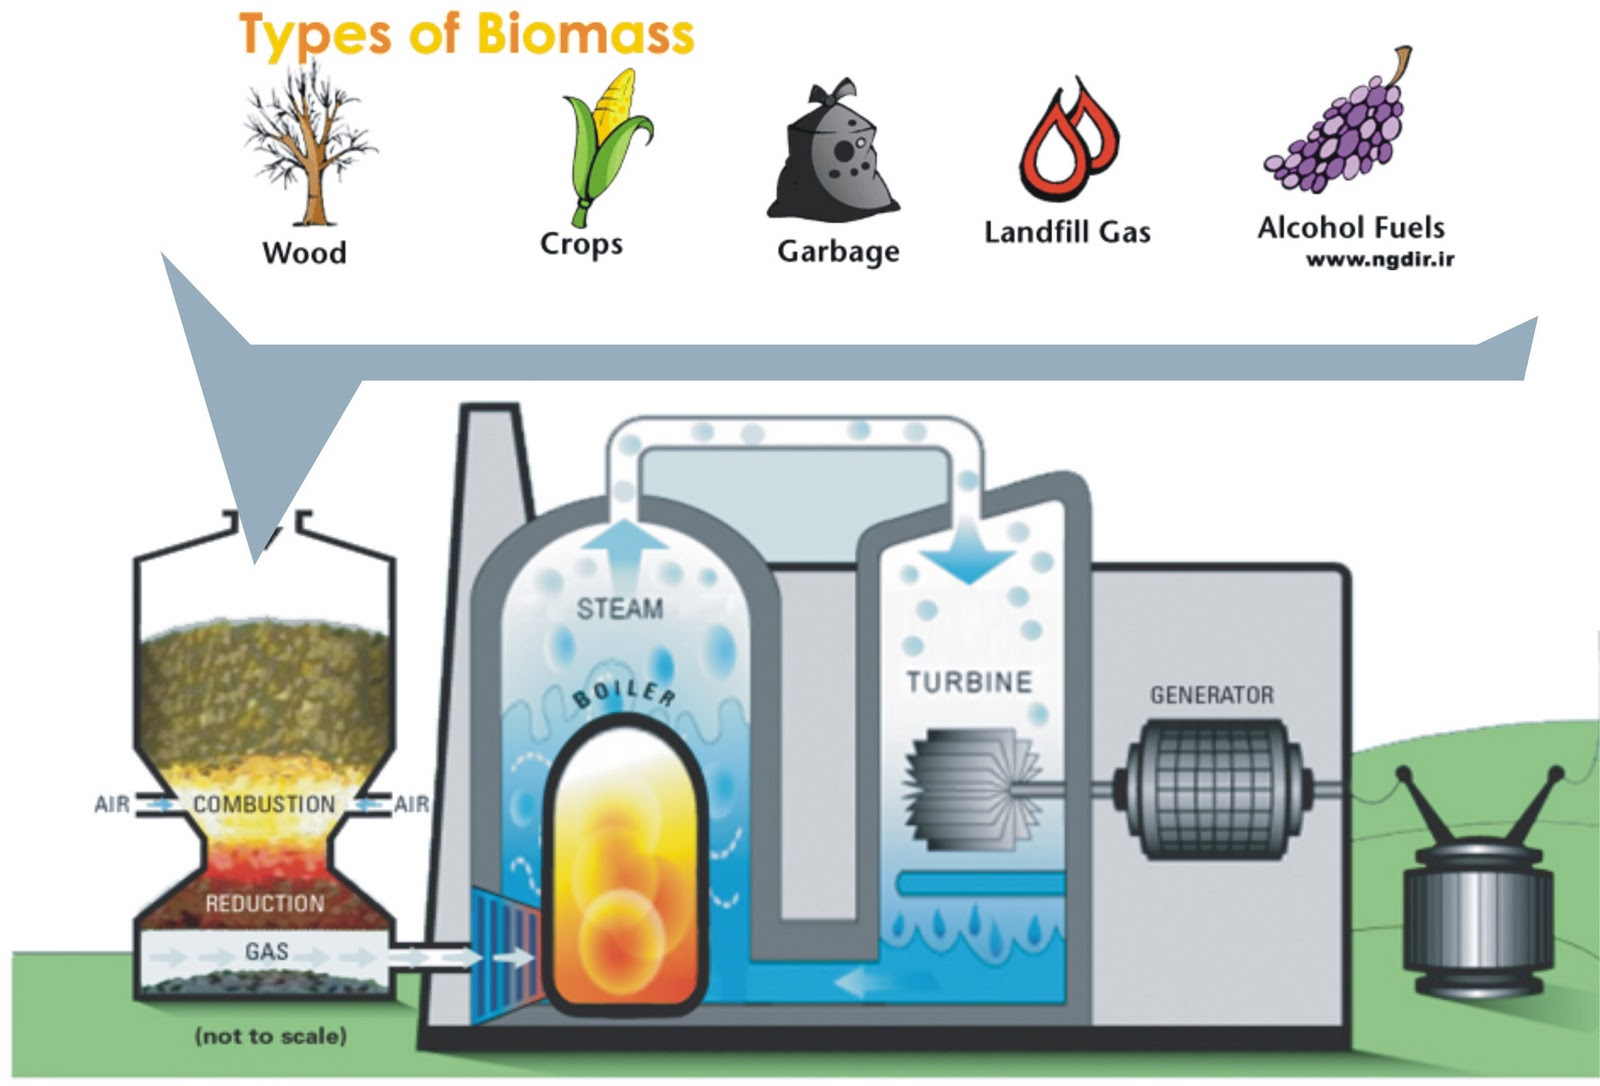 biomass energy diagram - photo #1